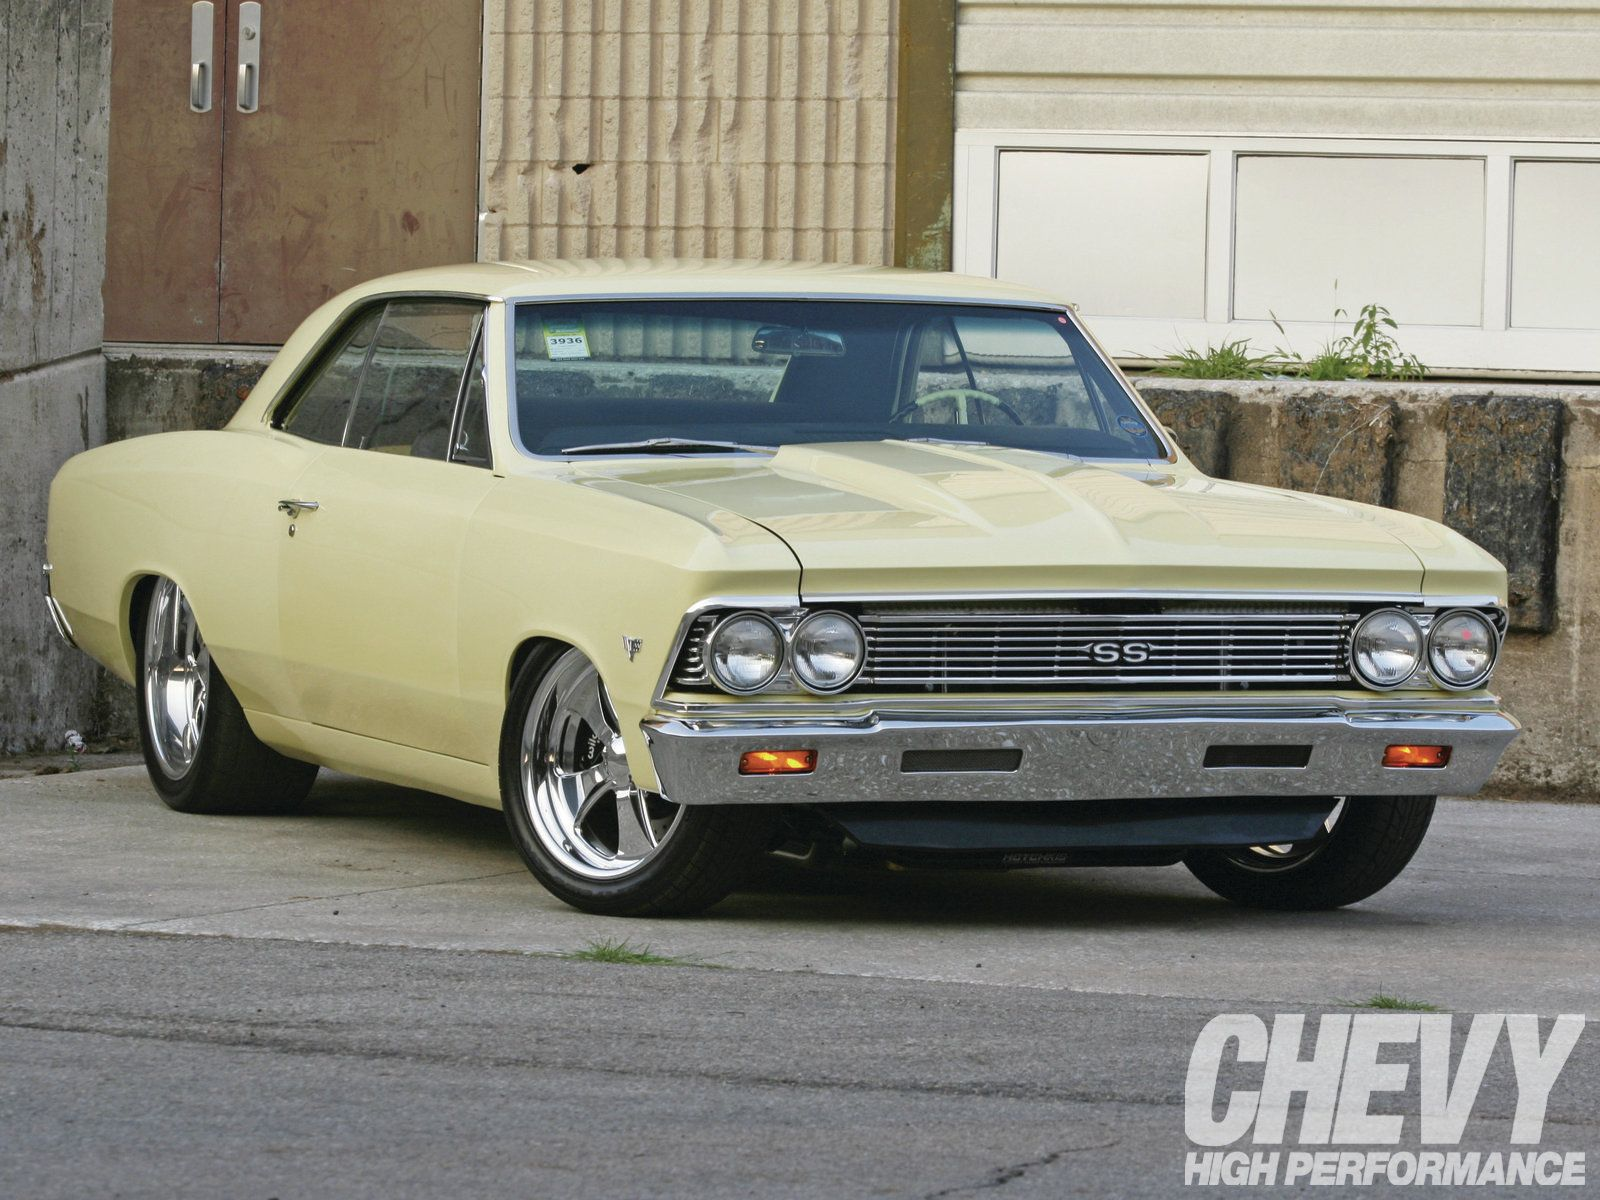 1966 Chevrolet Chevelle My 66 Convertible Was Butternut Yellow Camaro Ss With Black Top